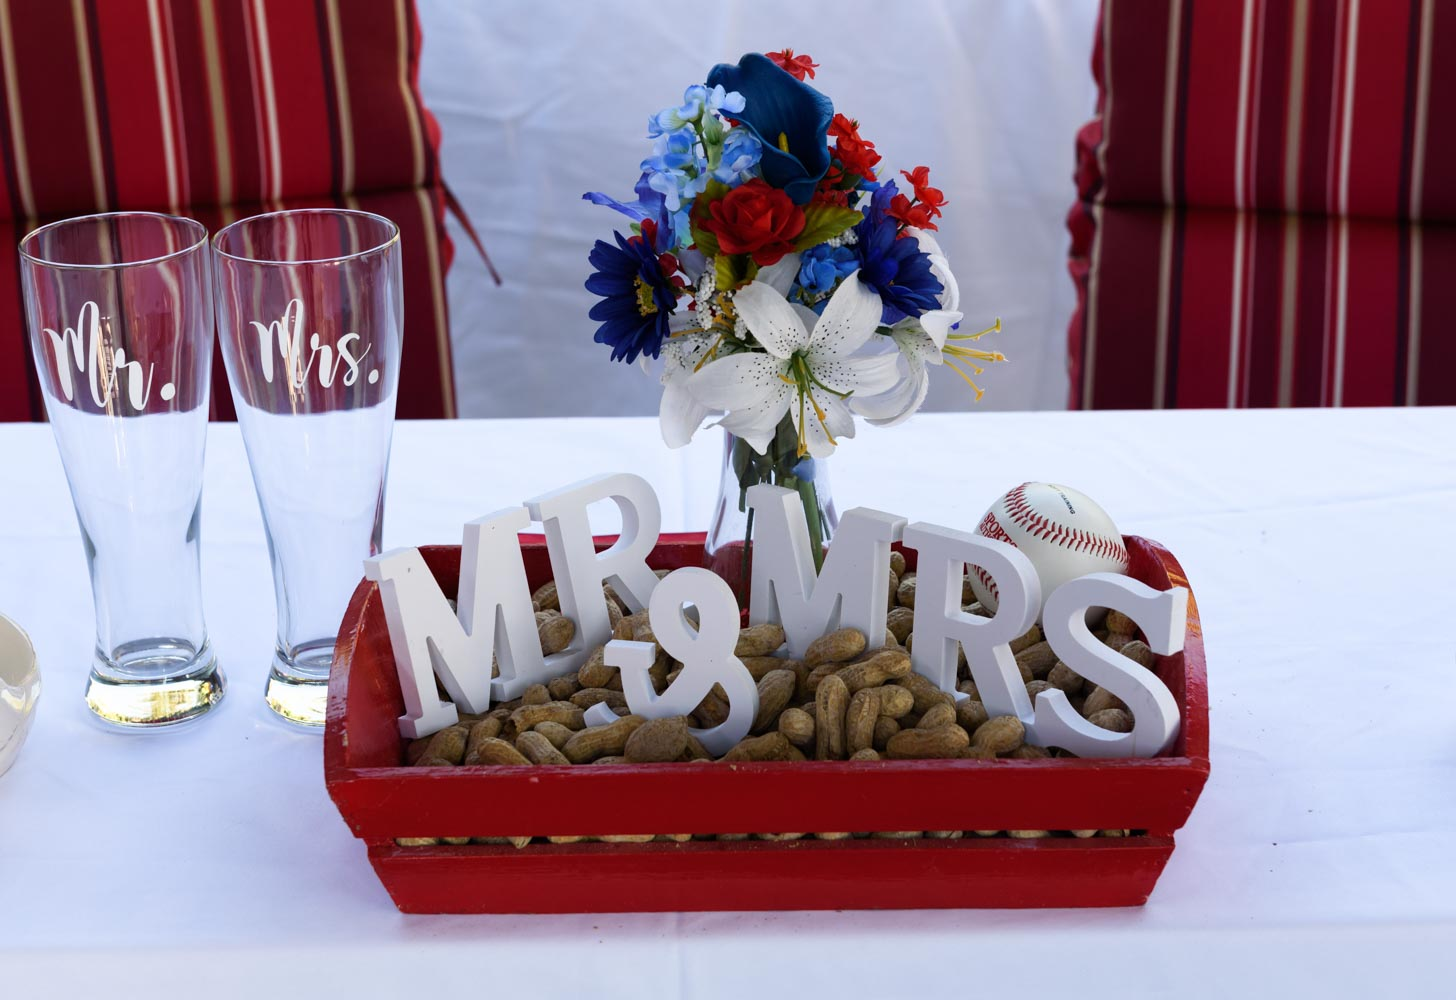 Baseball wedding centerpiece with peanuts, beer glasses, and Mr. and Mrs. sign